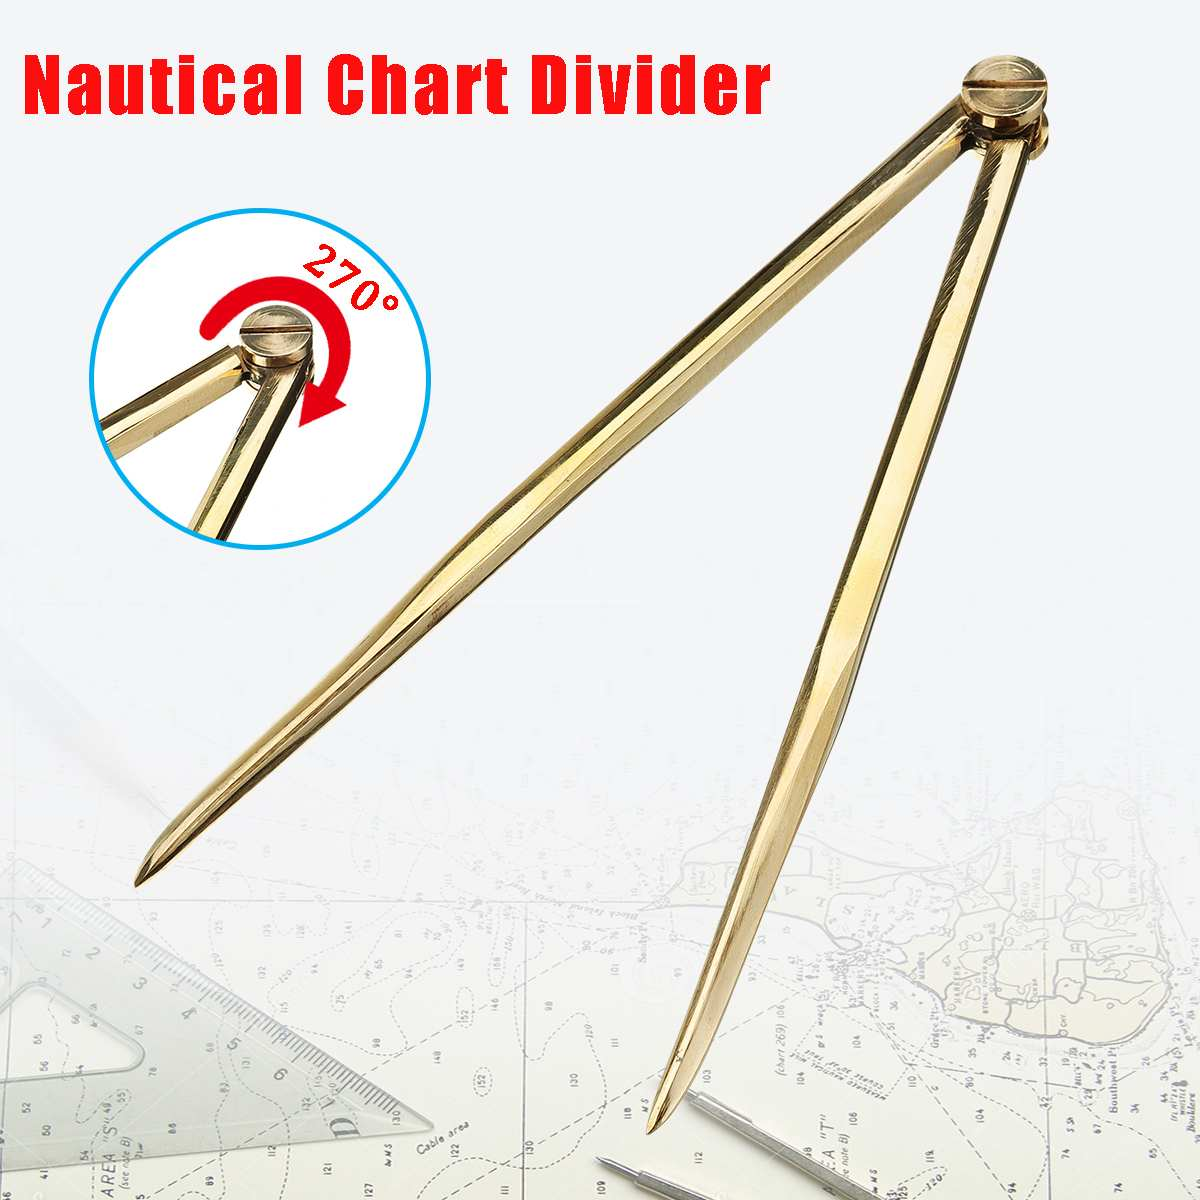 Lot of 10 Brass /& Stainless Steel Marine Navigation Map Divider Nautical Compass